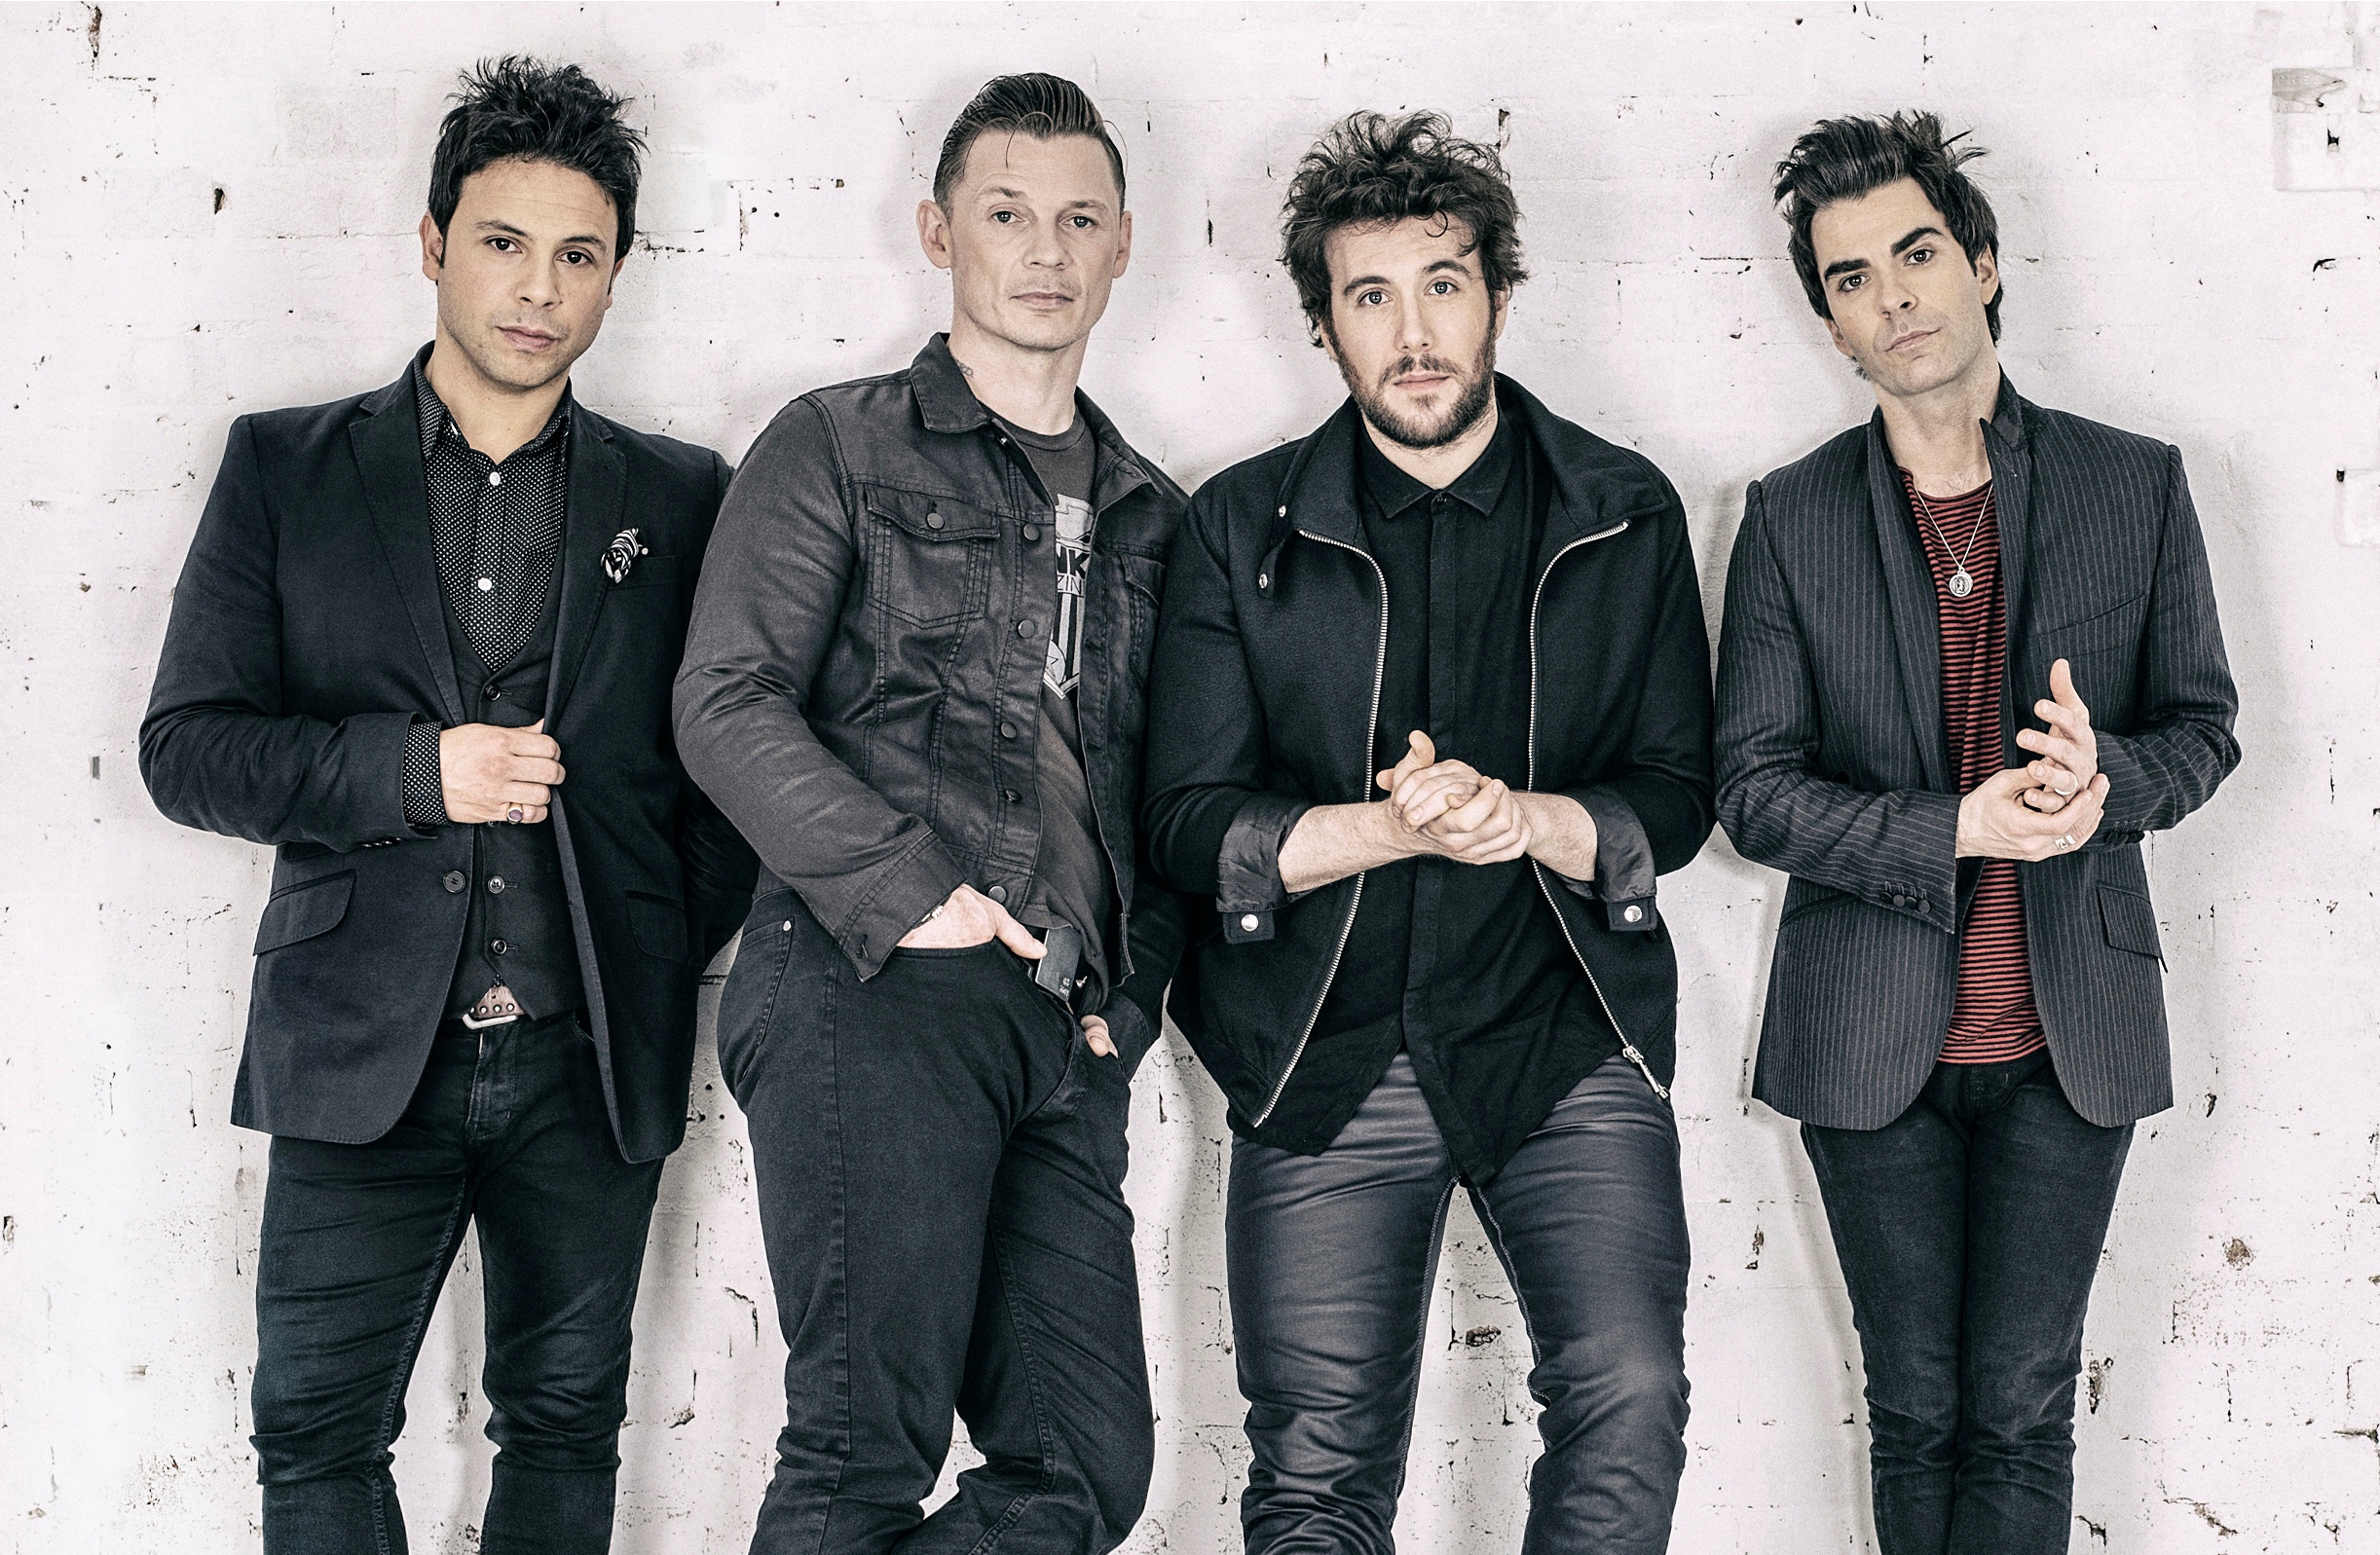 stereophonics_11may15_124002